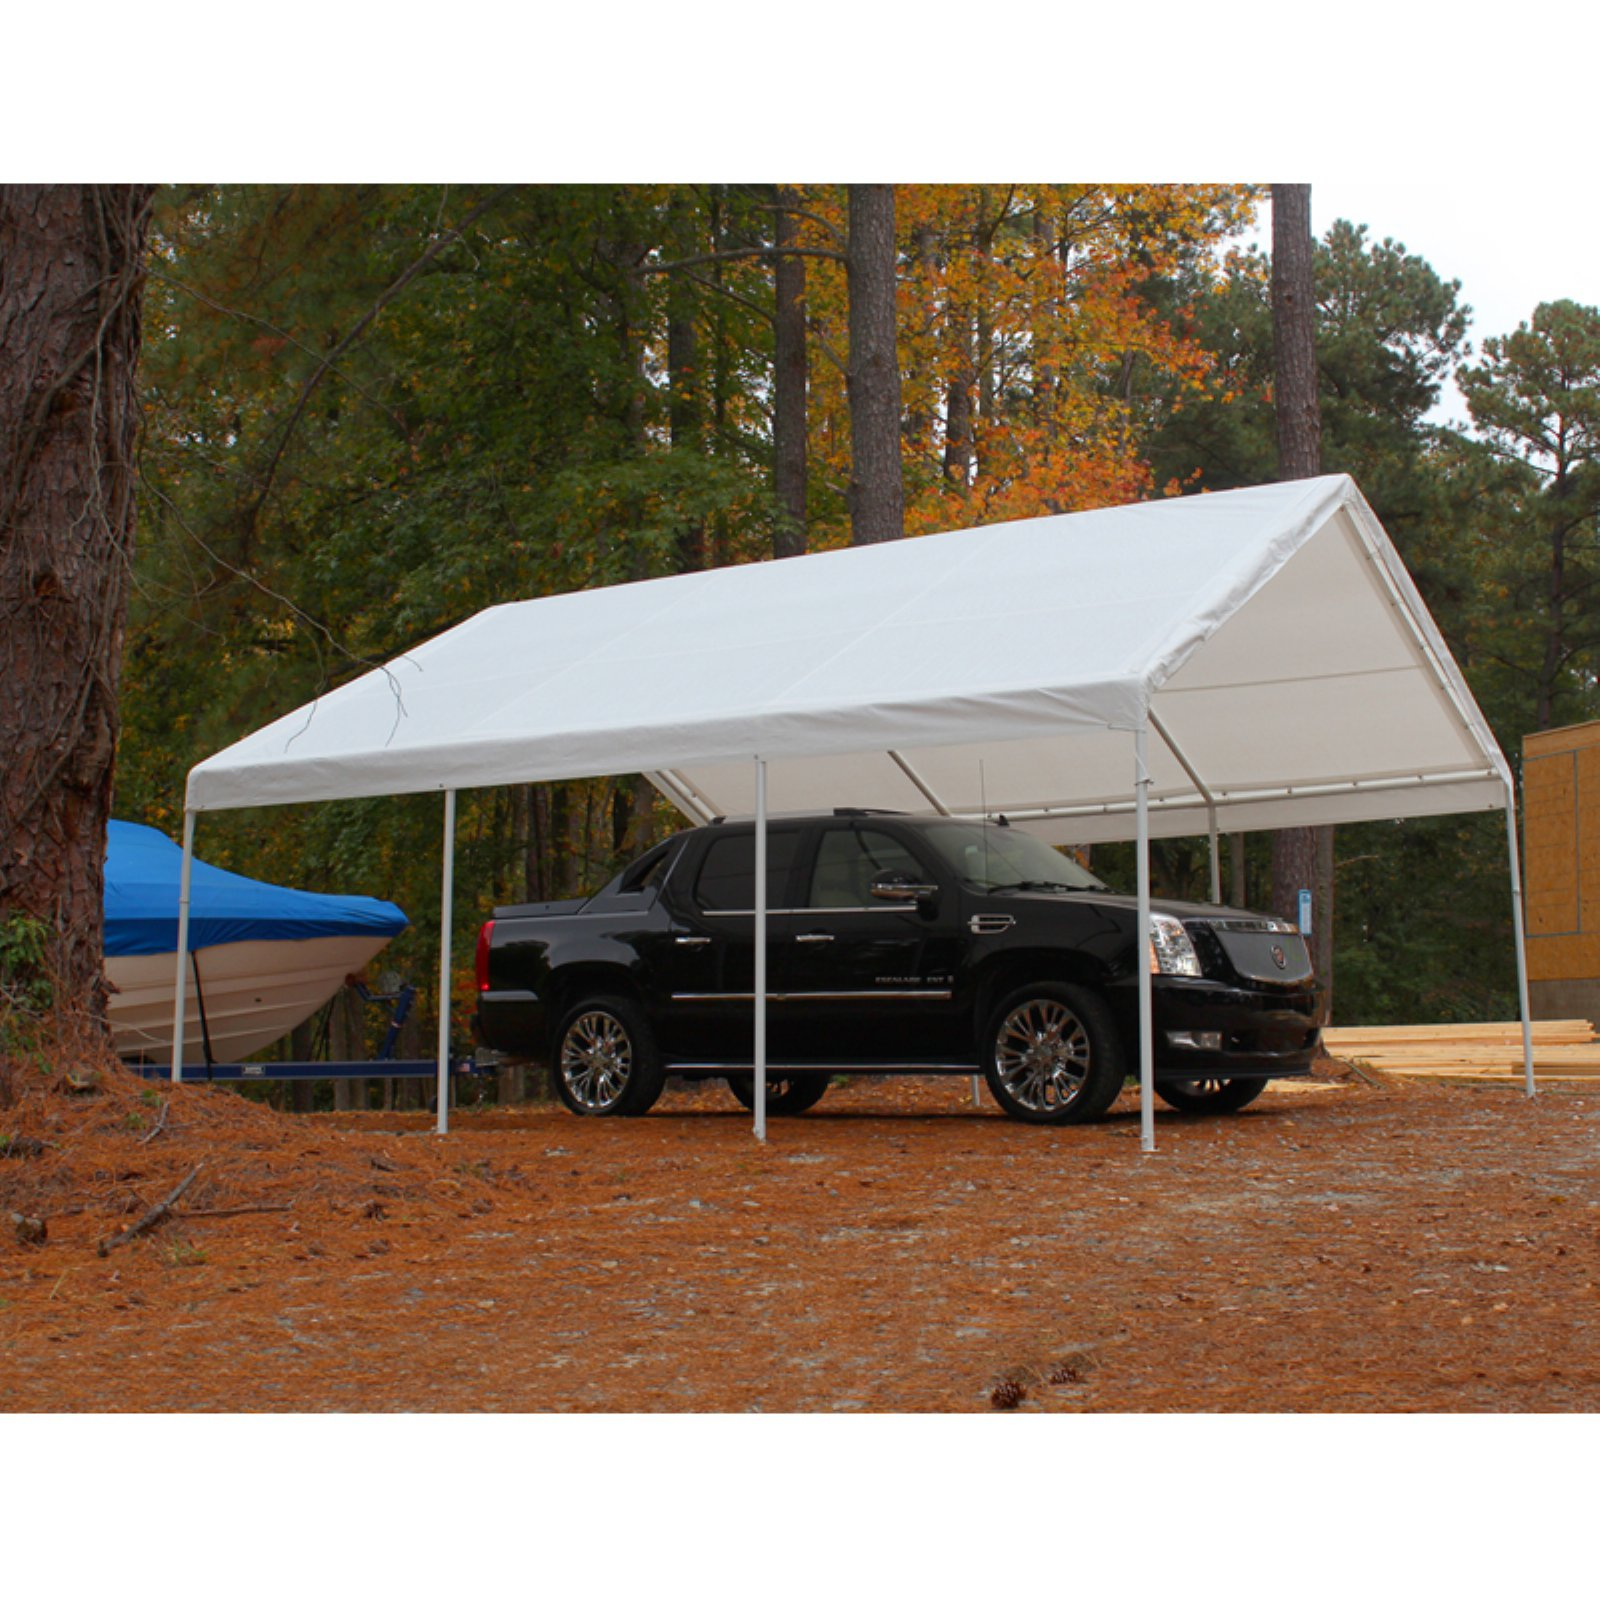 King Canopy Hercules White Canopy Carport - 18 x 20 ft.